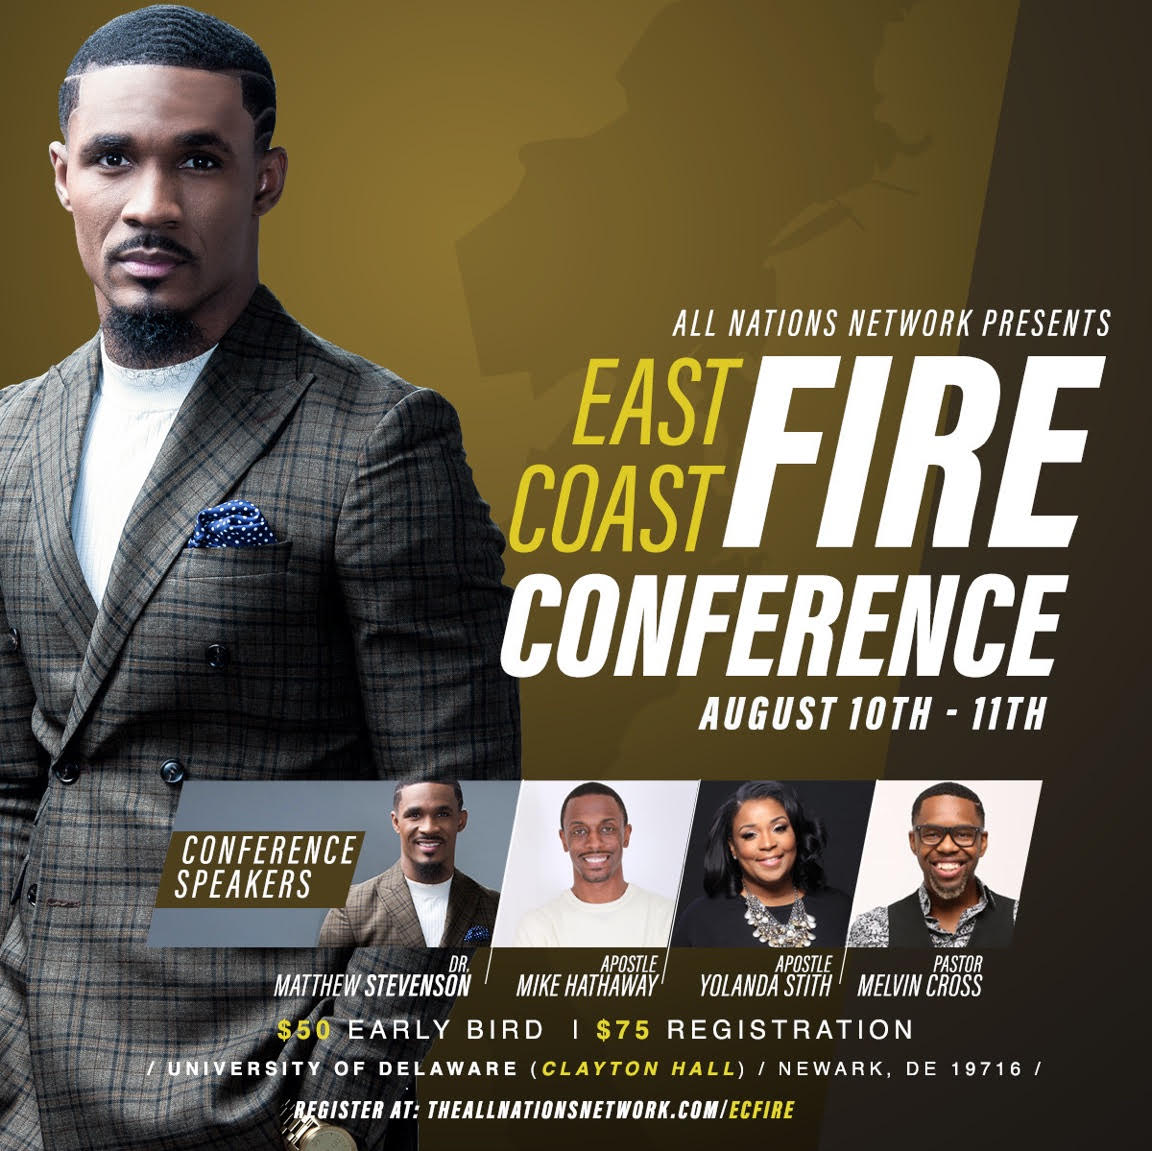 East Coast Fire COnference Speakers